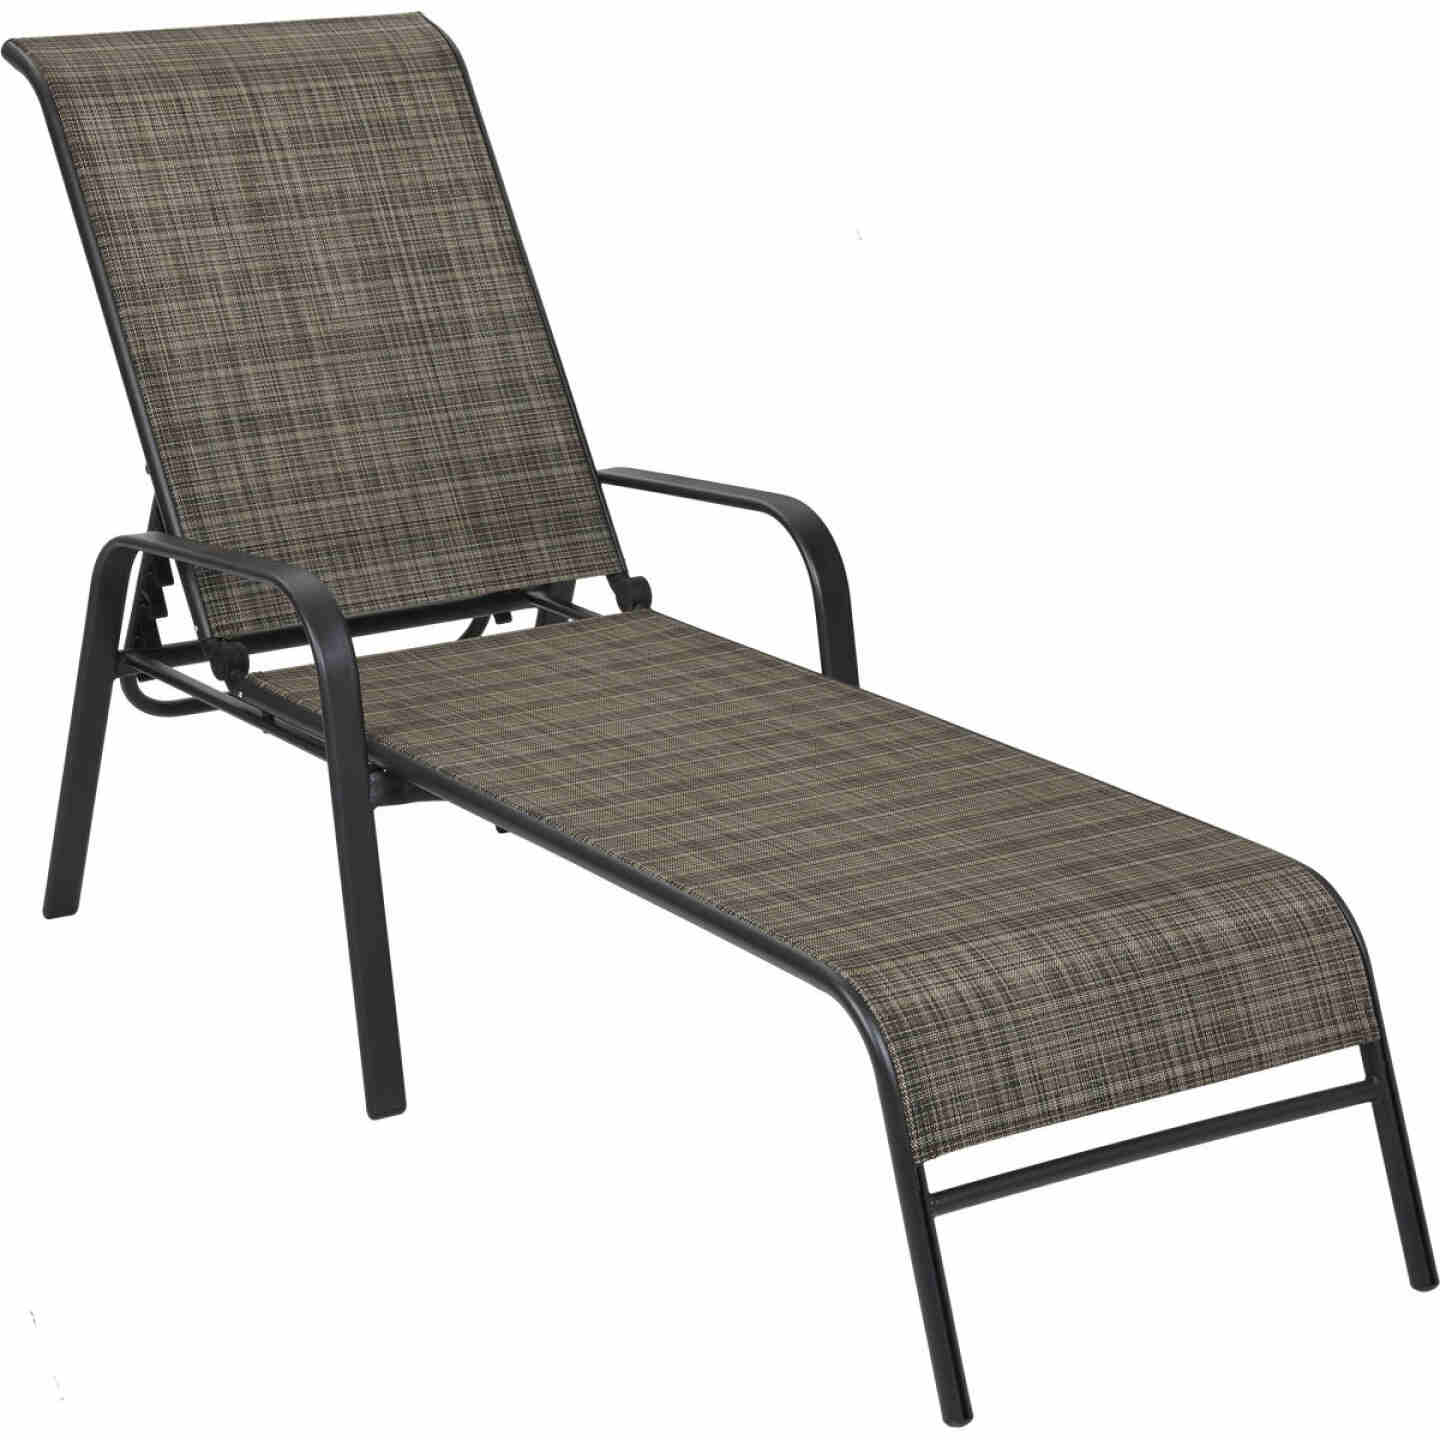 Outdoor Expressions Windsor Collection Chaise Lounge Image 1